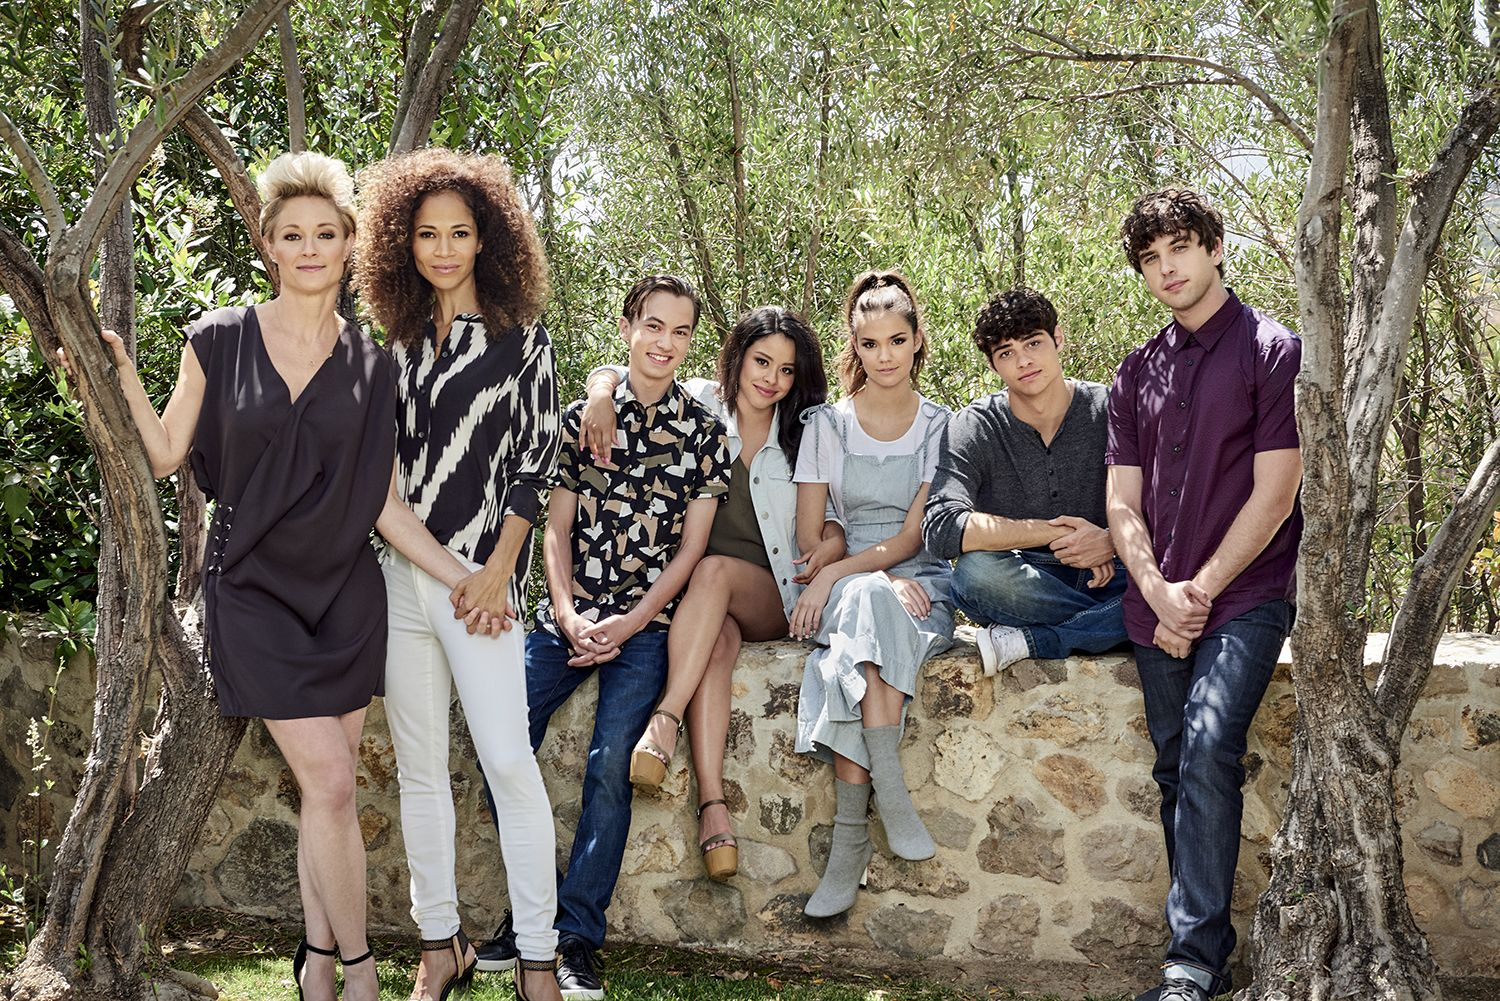 Freeformss 'The Fosters' stars Teri Polo as Stef, Sherri Saum as Lena, Hayden Byerly as Jude, Cierra Ramirez as Mariana, Maia Mitchell as Callie, Noah Centineo as Jesus, and David Lambert as Brandon.